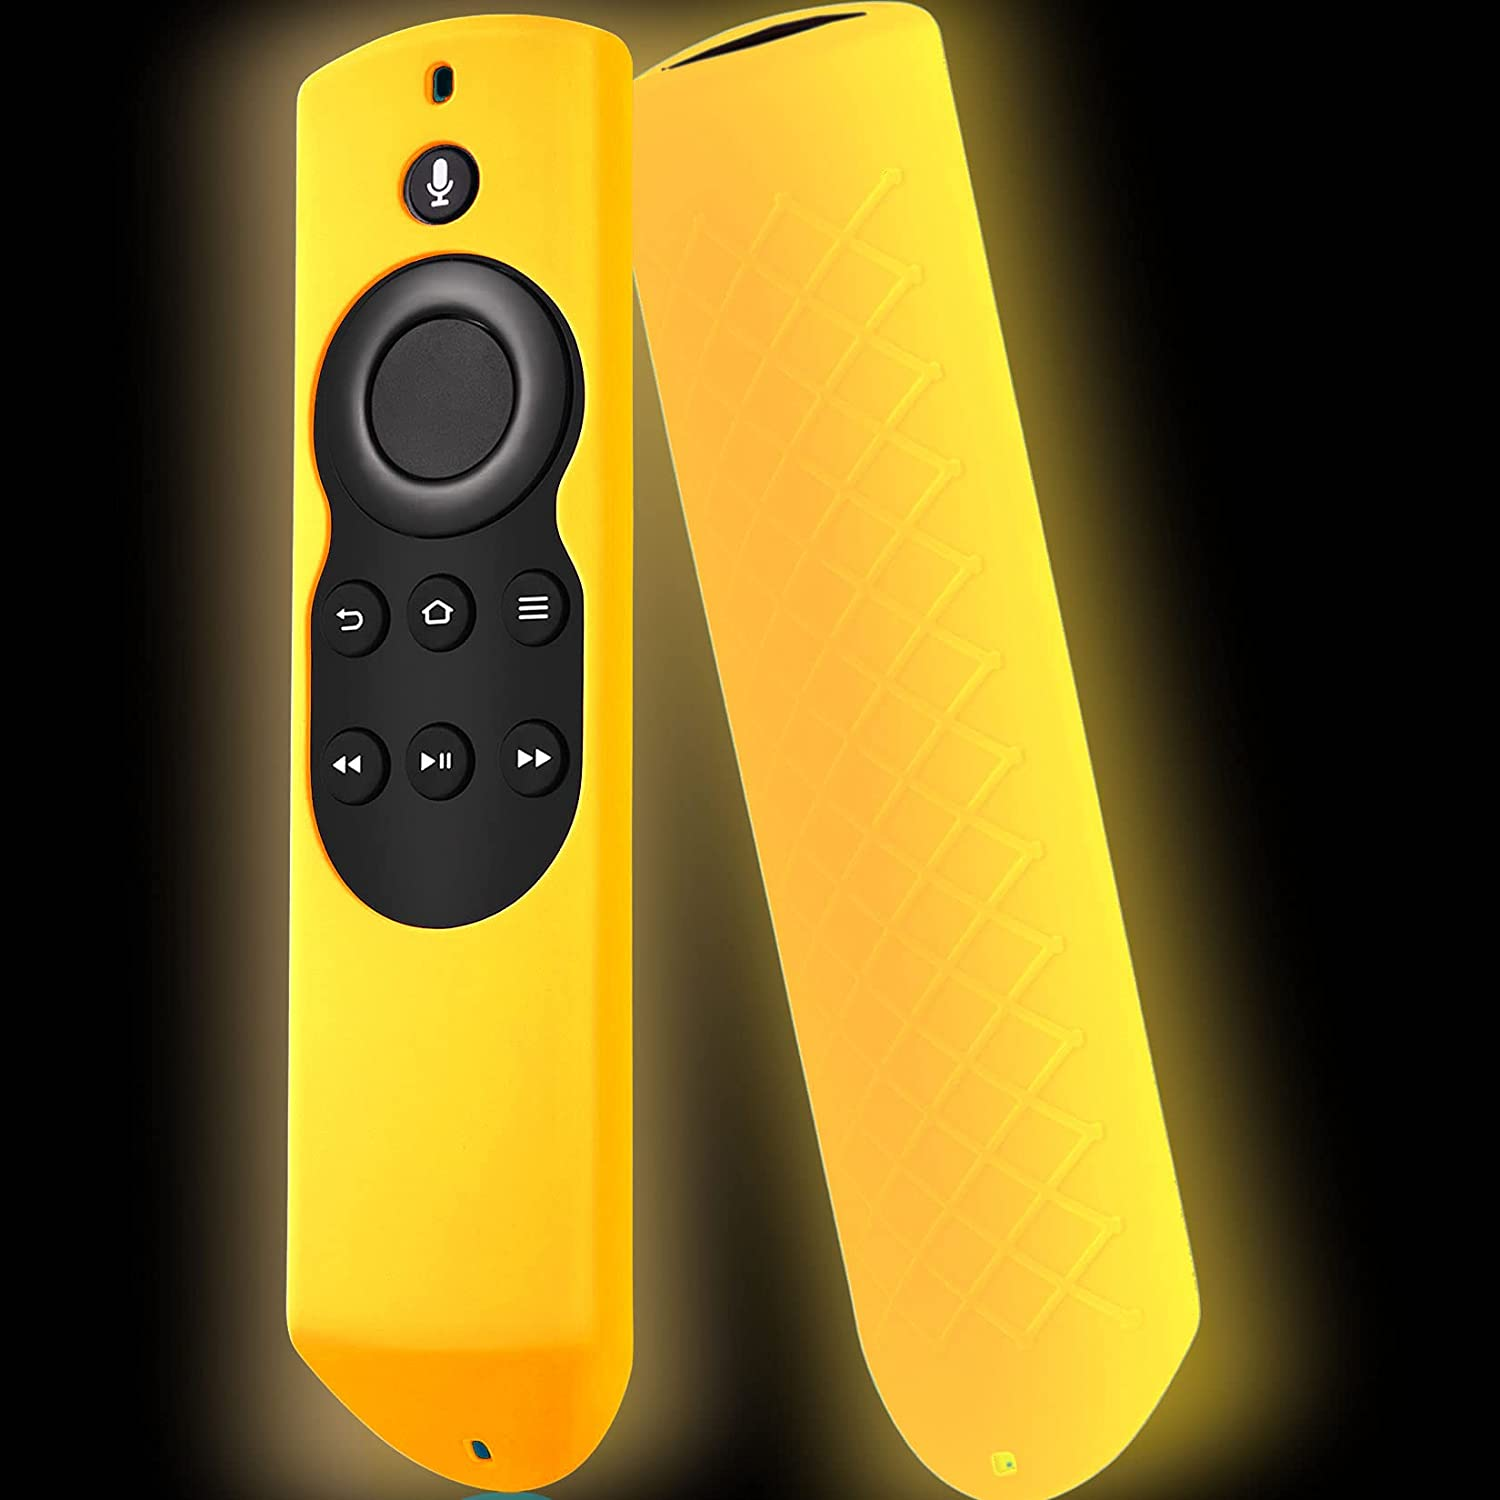 Packzprint Firestick Cover Compatible with Amazon Fire Stick Remote, Cover for Fire Stick Remote Control Glow in The Dark, Firestickremote Cover Glow Orange